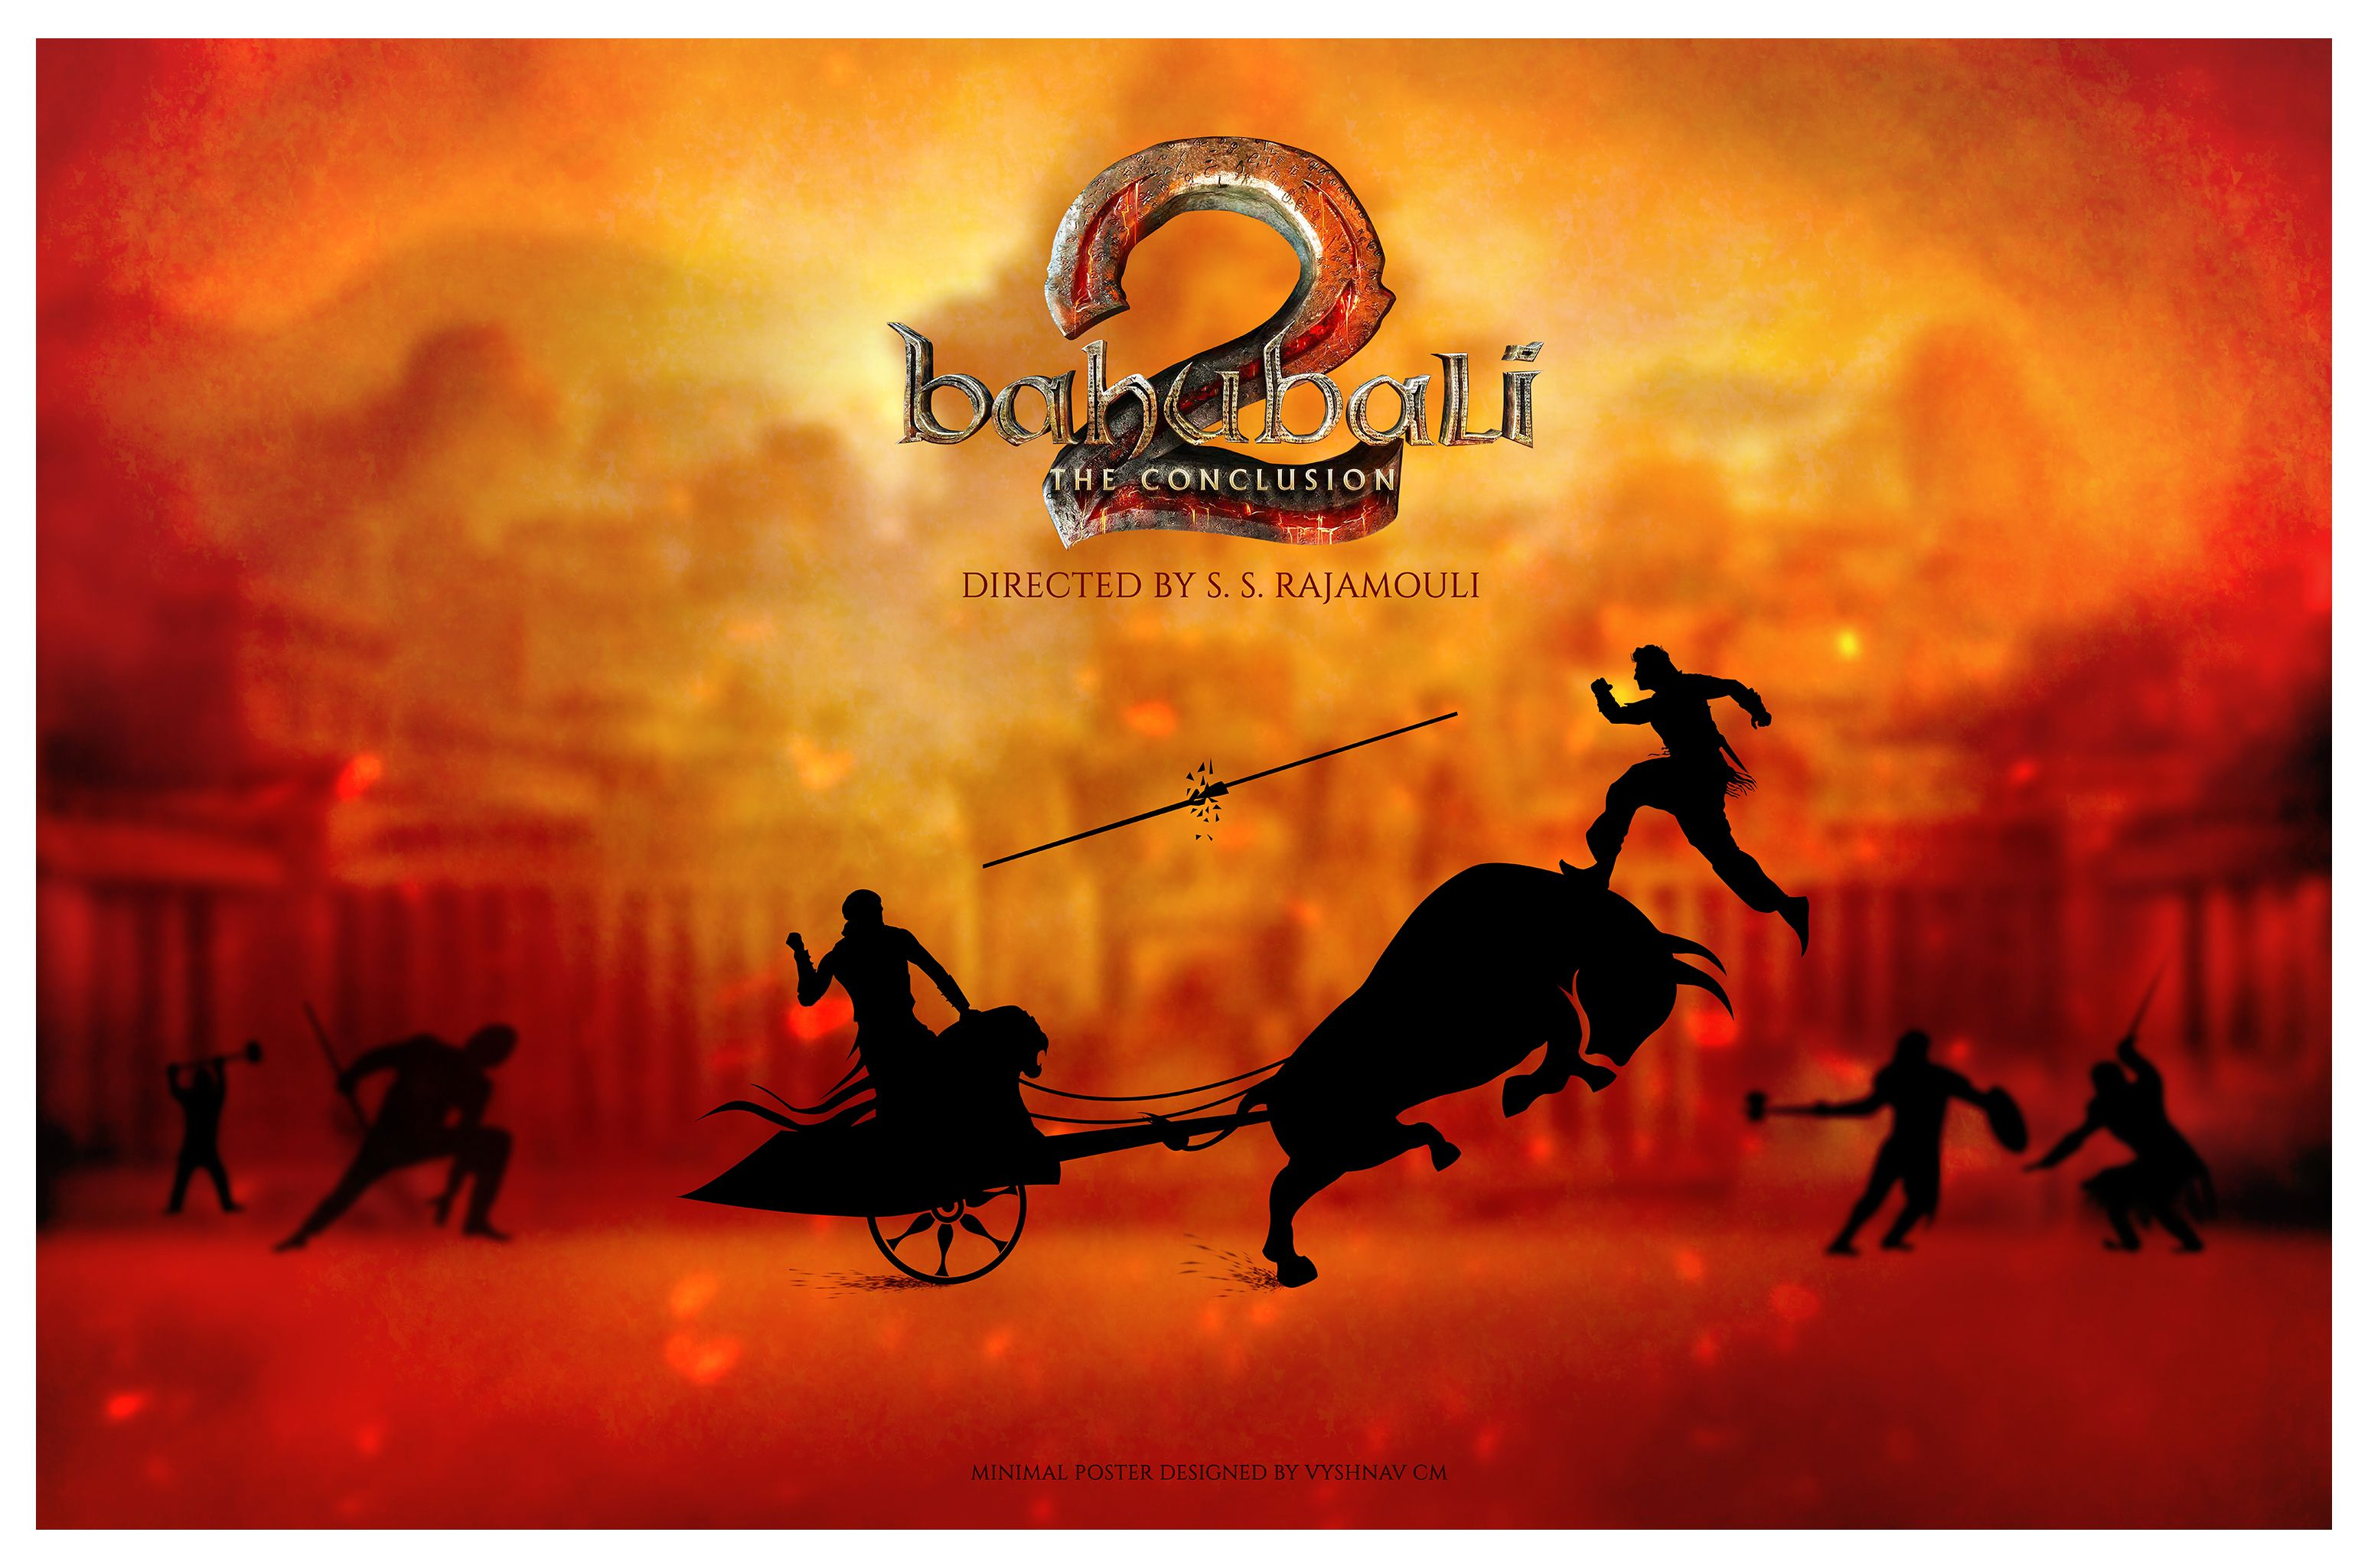 Baahubali 2 the conclusion minimal poster designed by - Bahubali 2 poster hd ...